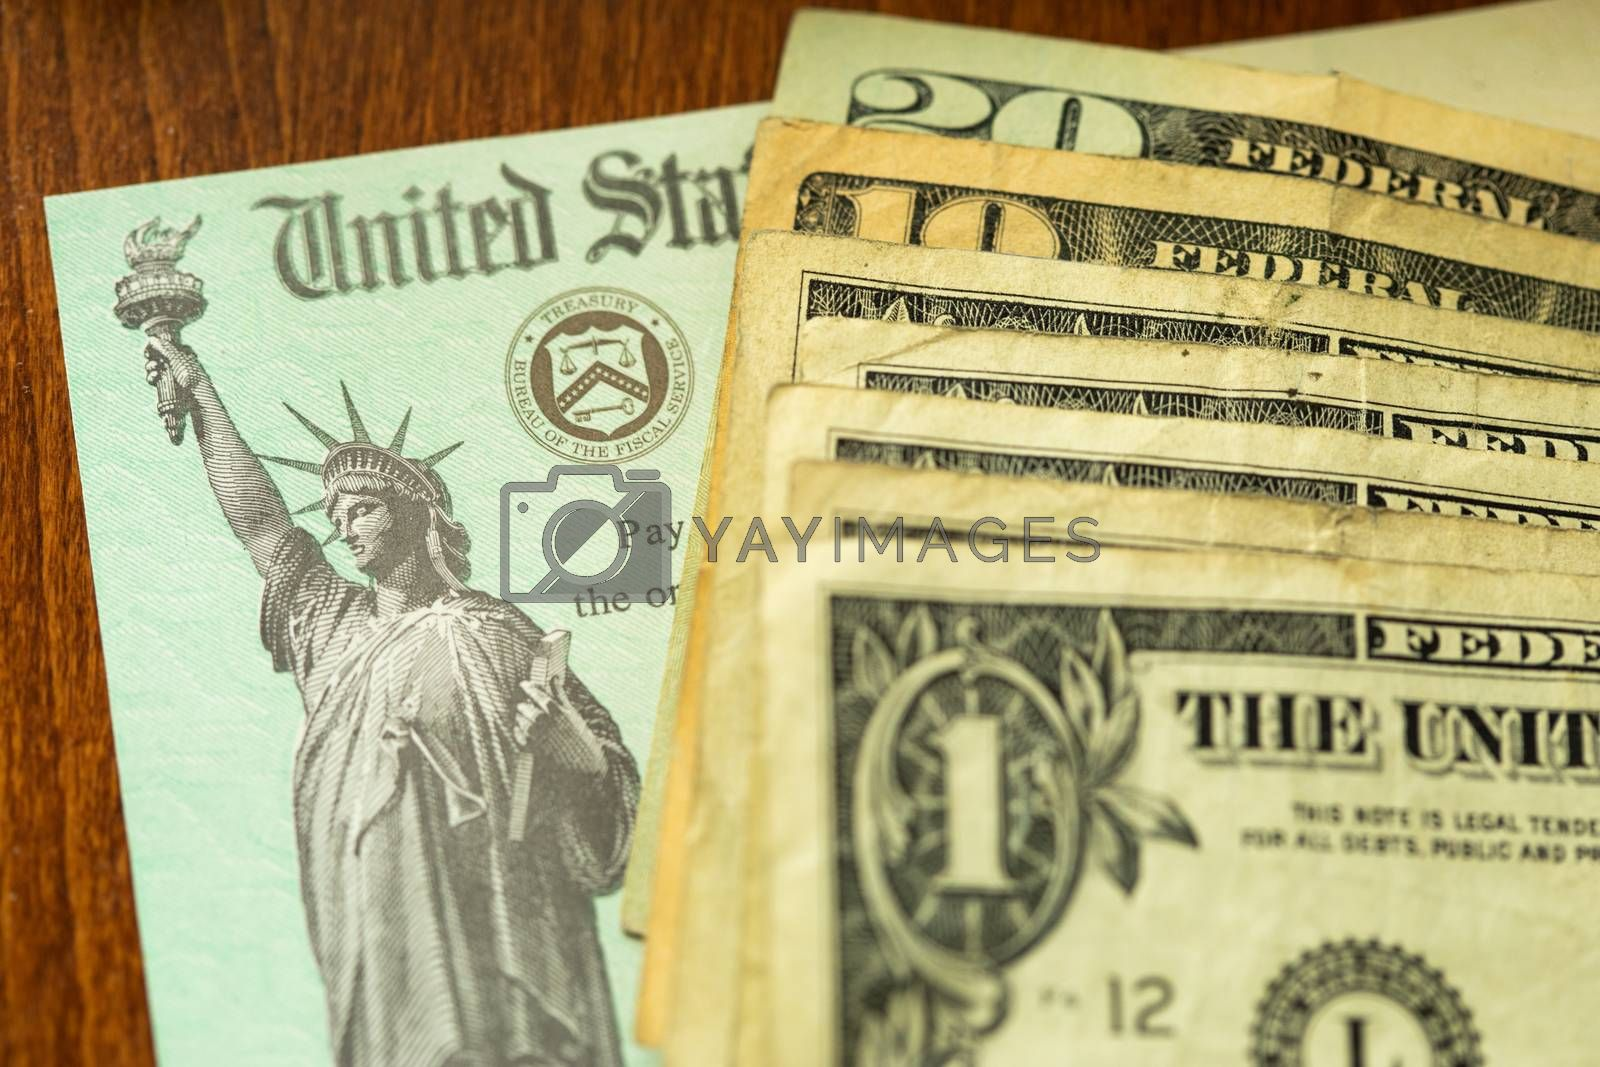 United States Internal Revenue Service, IRS, Check and Cash On Desk.